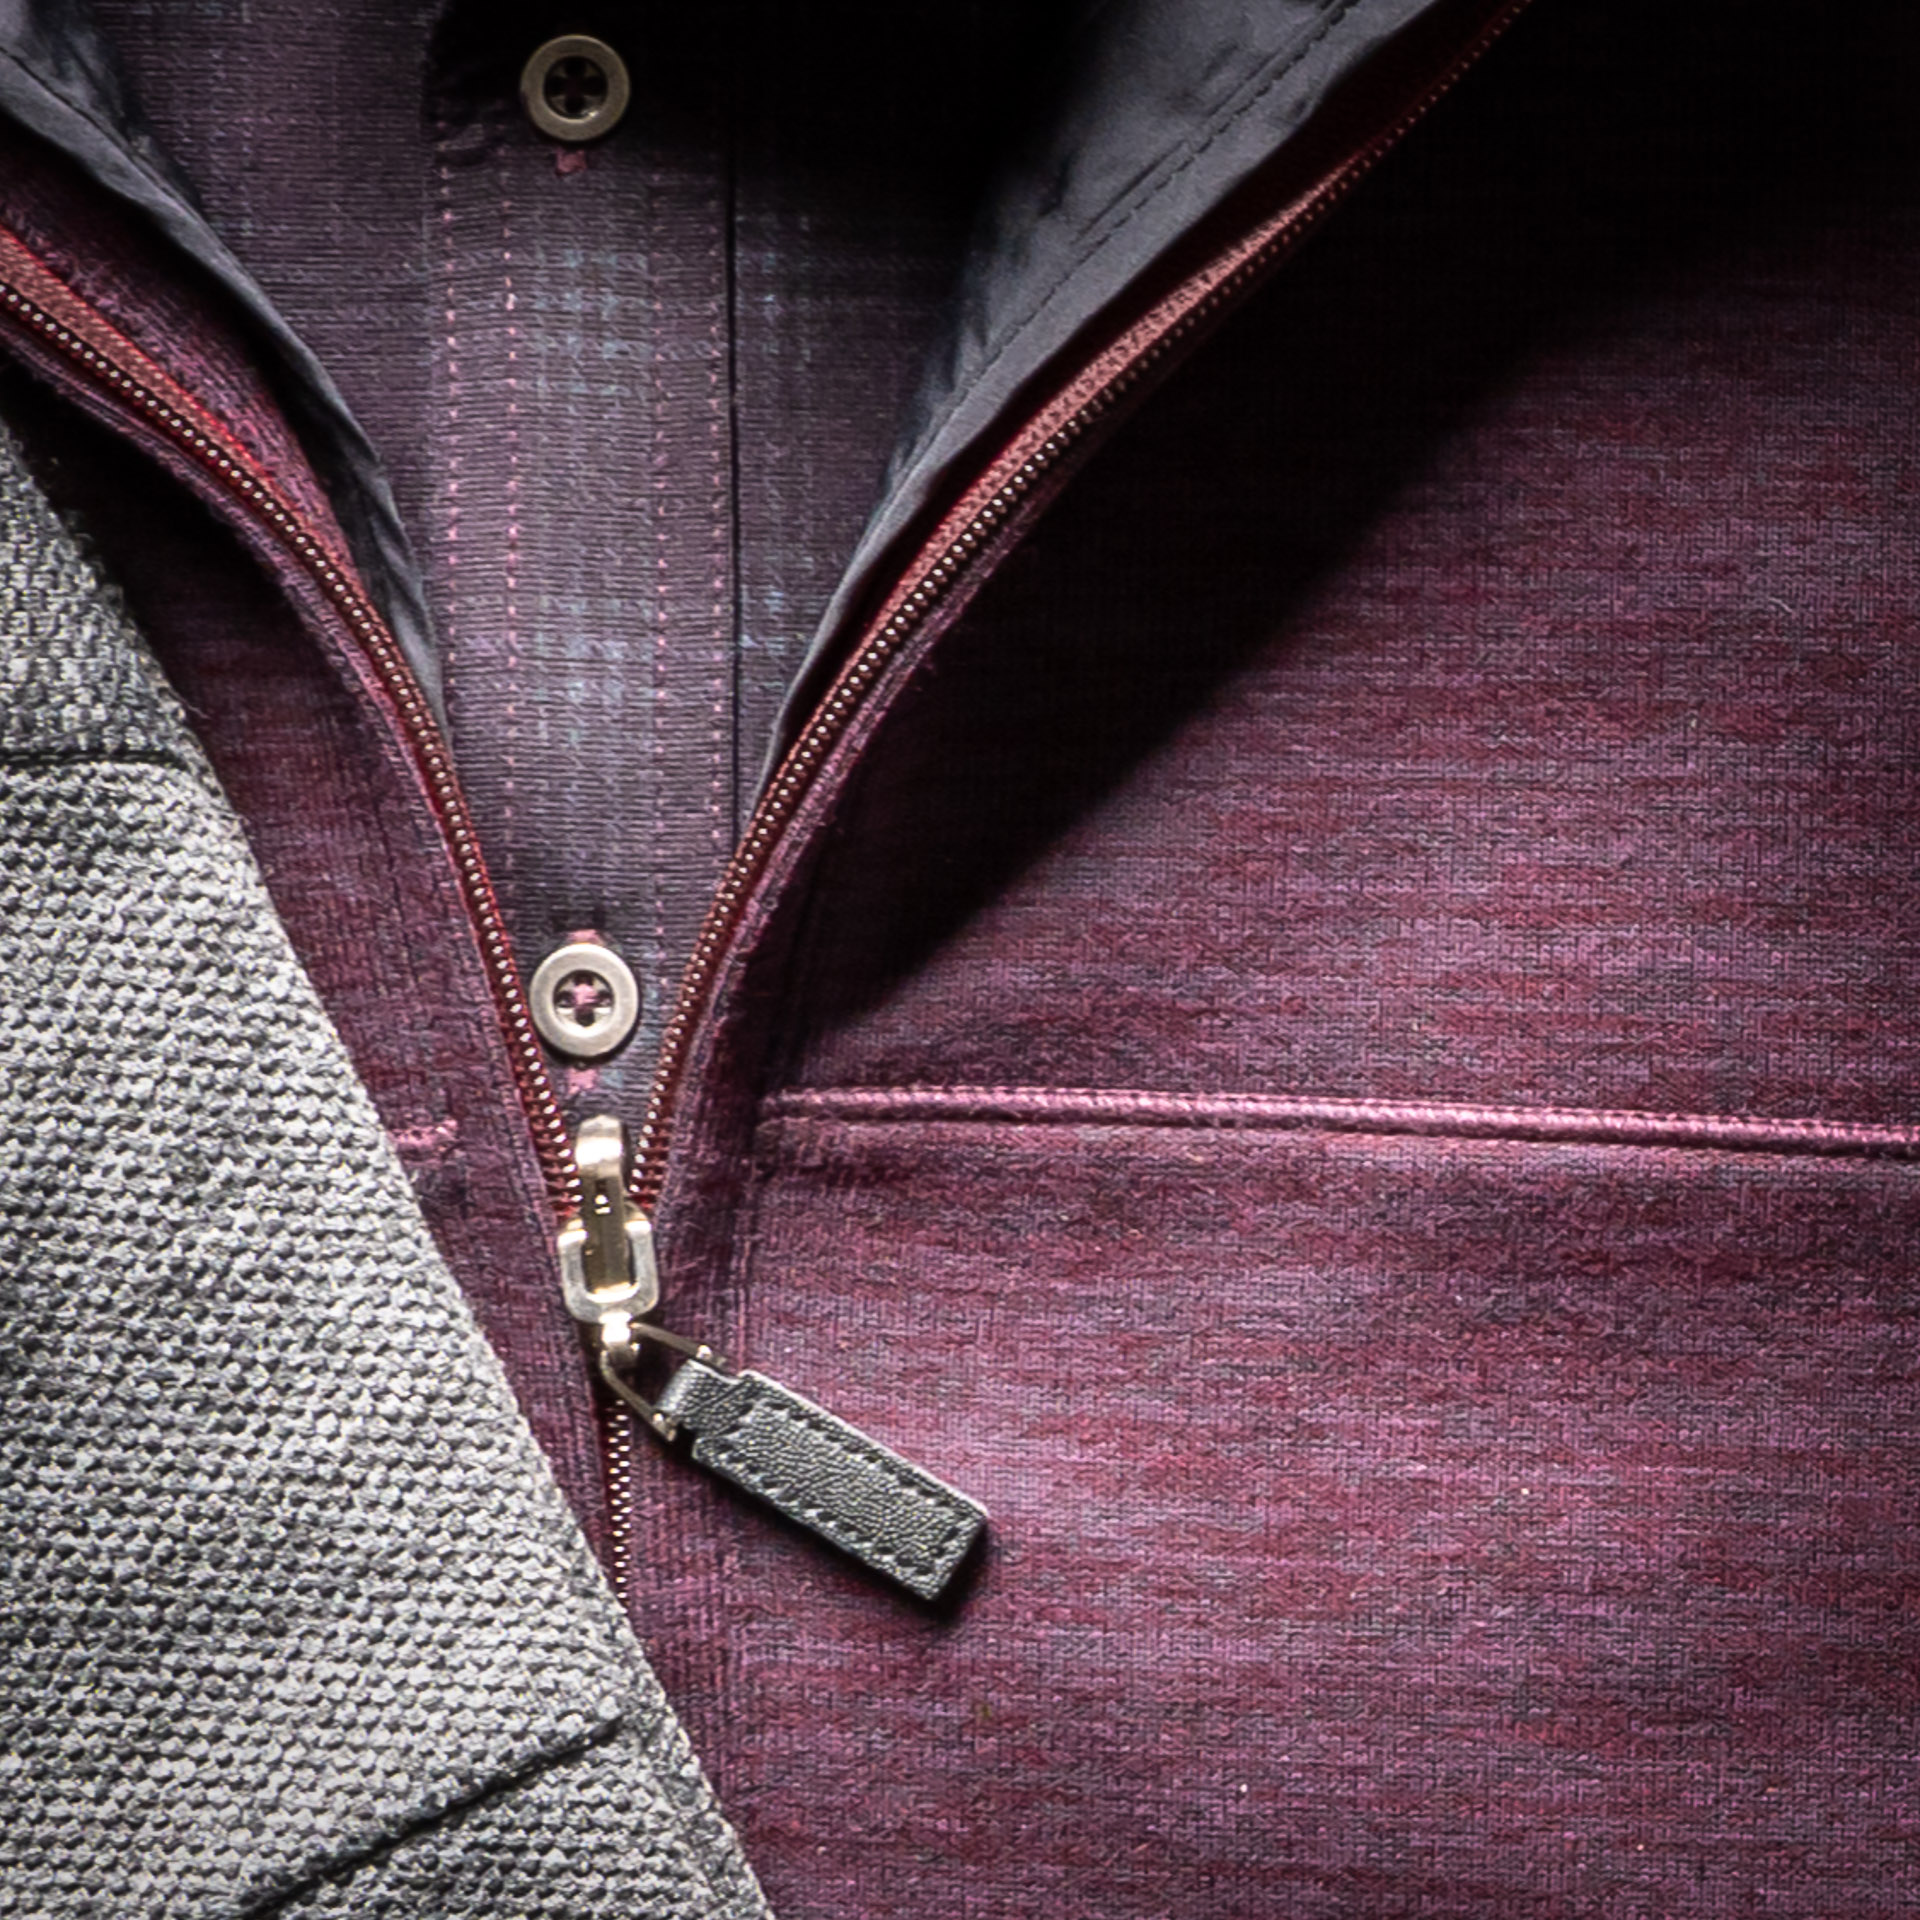 PERFORMANCE KNIT FULL-ZIP WITH NYLON LINING